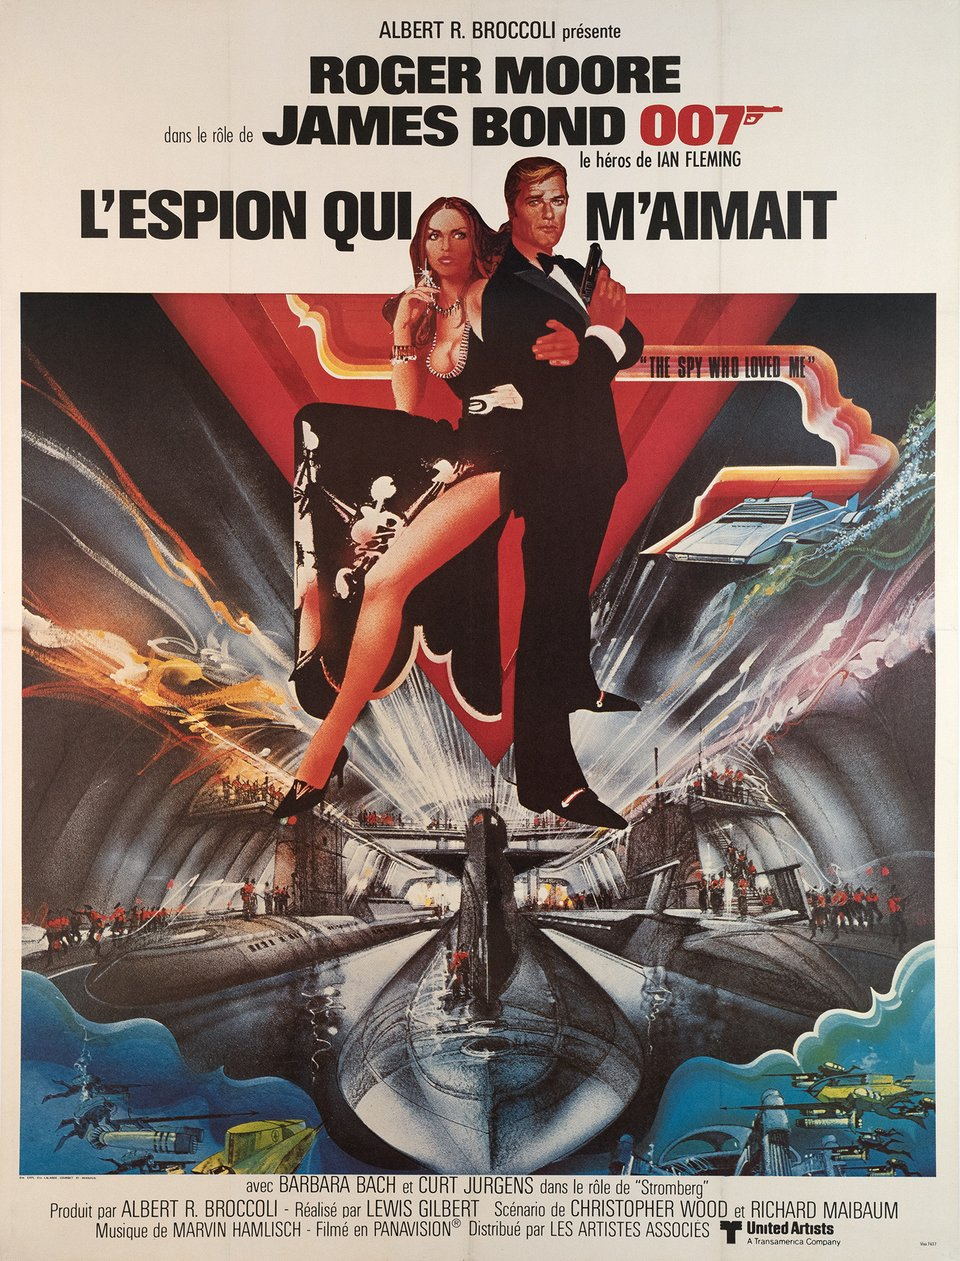 James Bond 007, l'Espion qui m'aimait – Affiche ancienne – Bob PEAK – 1977